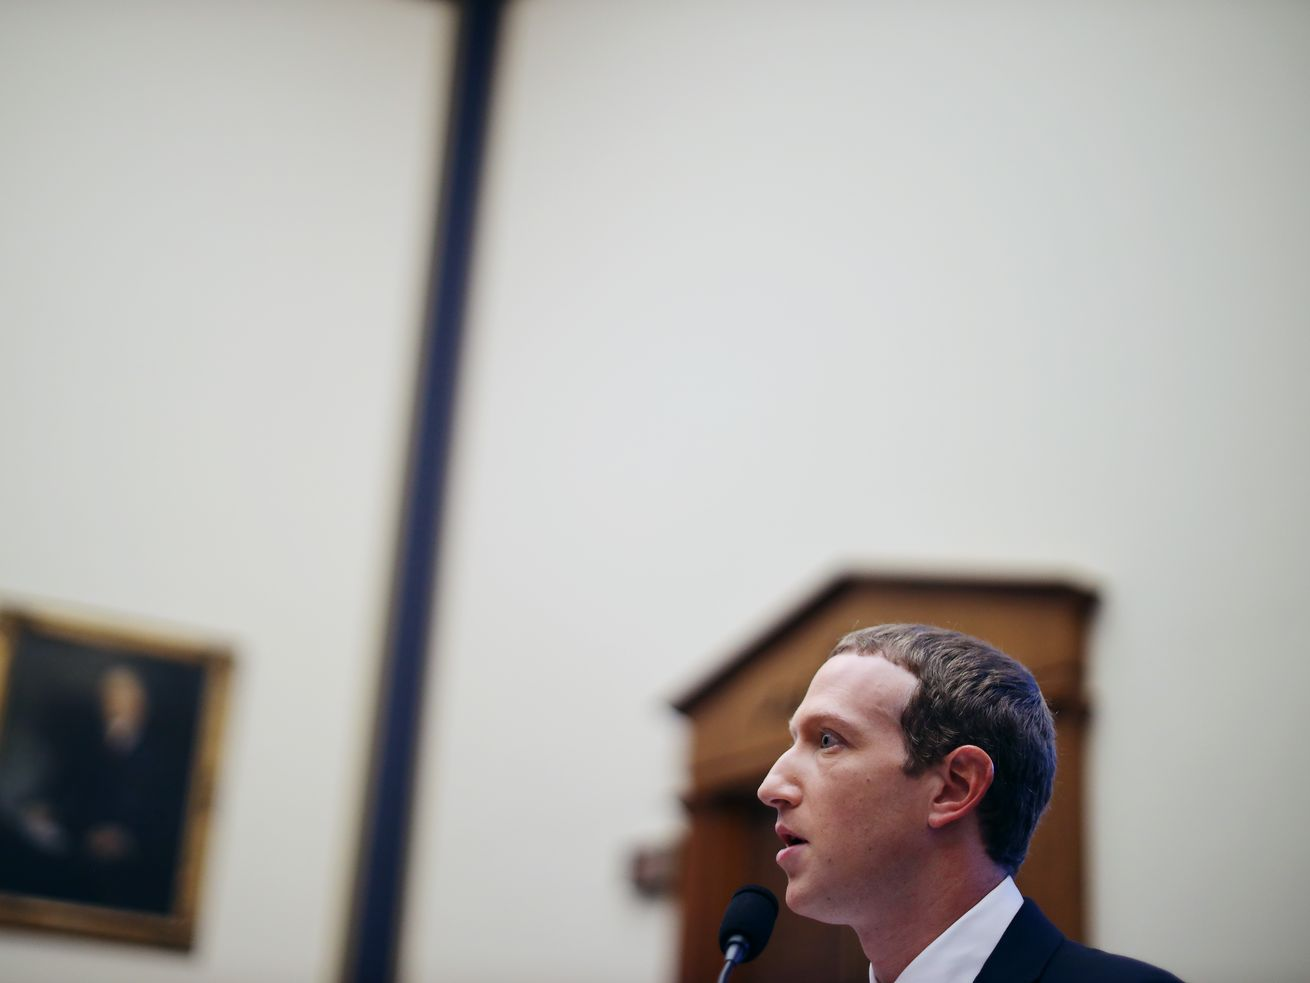 Facebook co-founder and CEO Mark Zuckerberg testifies before the House Financial Services Committee in October 2019.